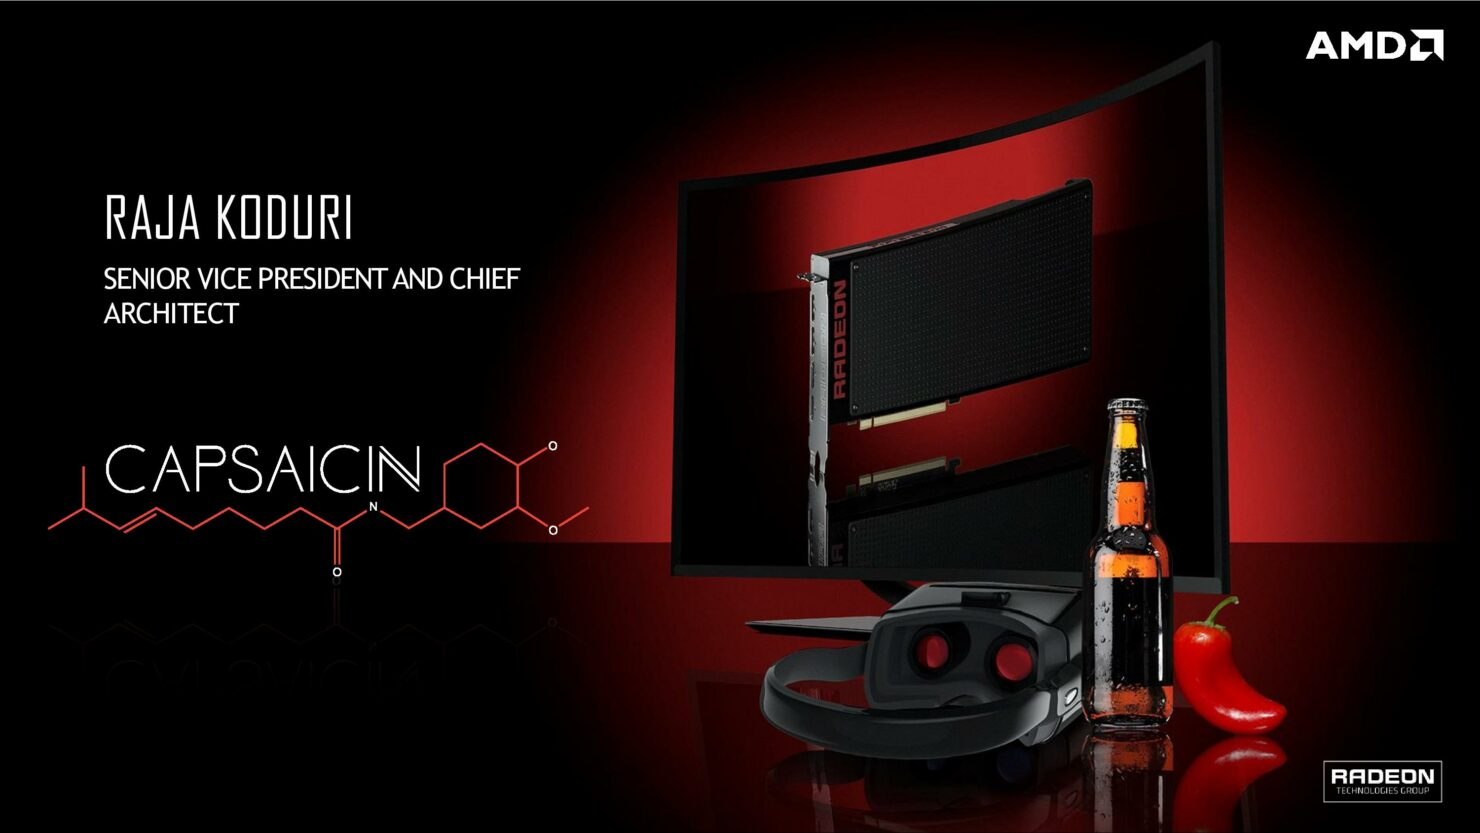 capsaicin-presented-by-amd-radeon_final-page-004